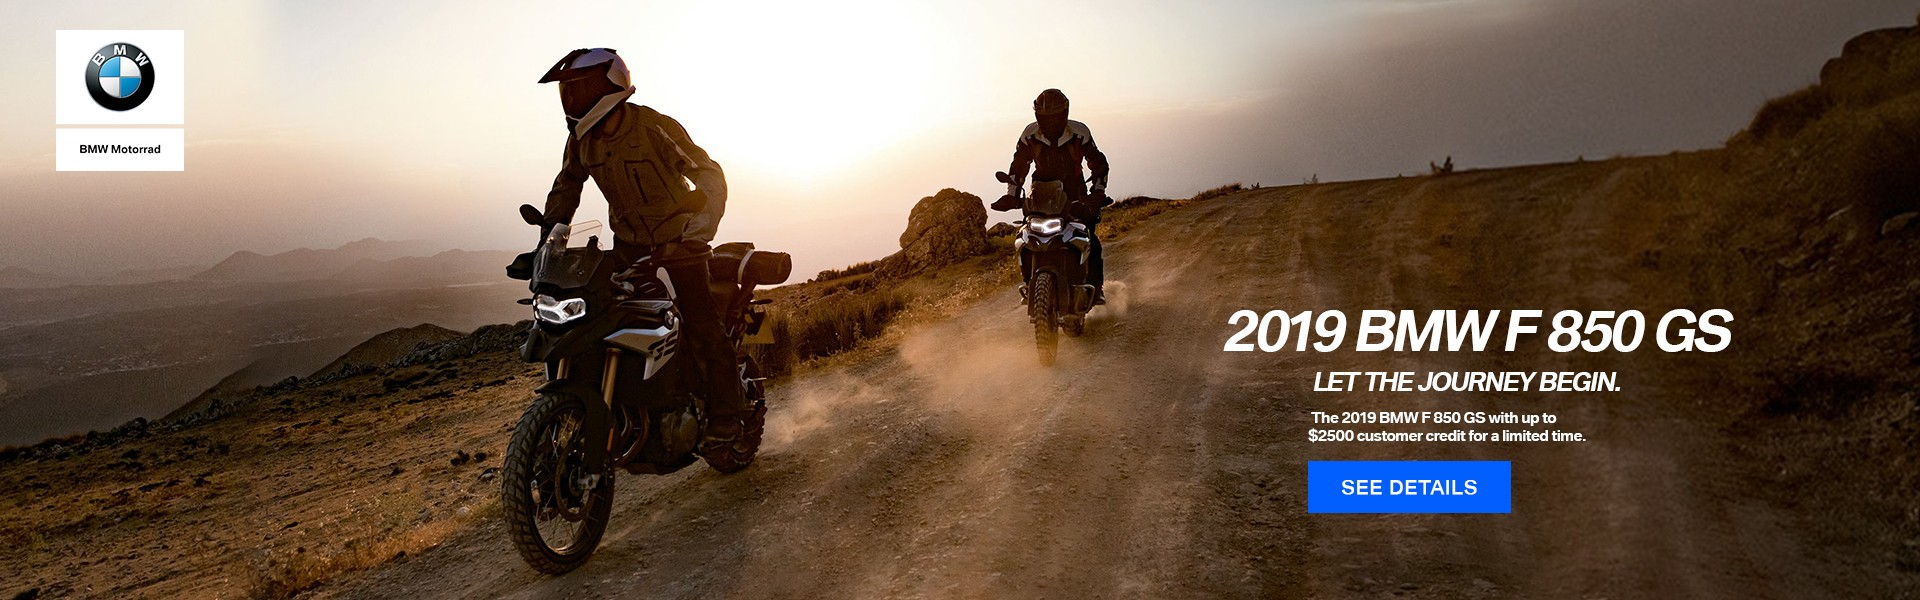 2019 BMW F 850 GS with up to $2500 customer credit for a limited time